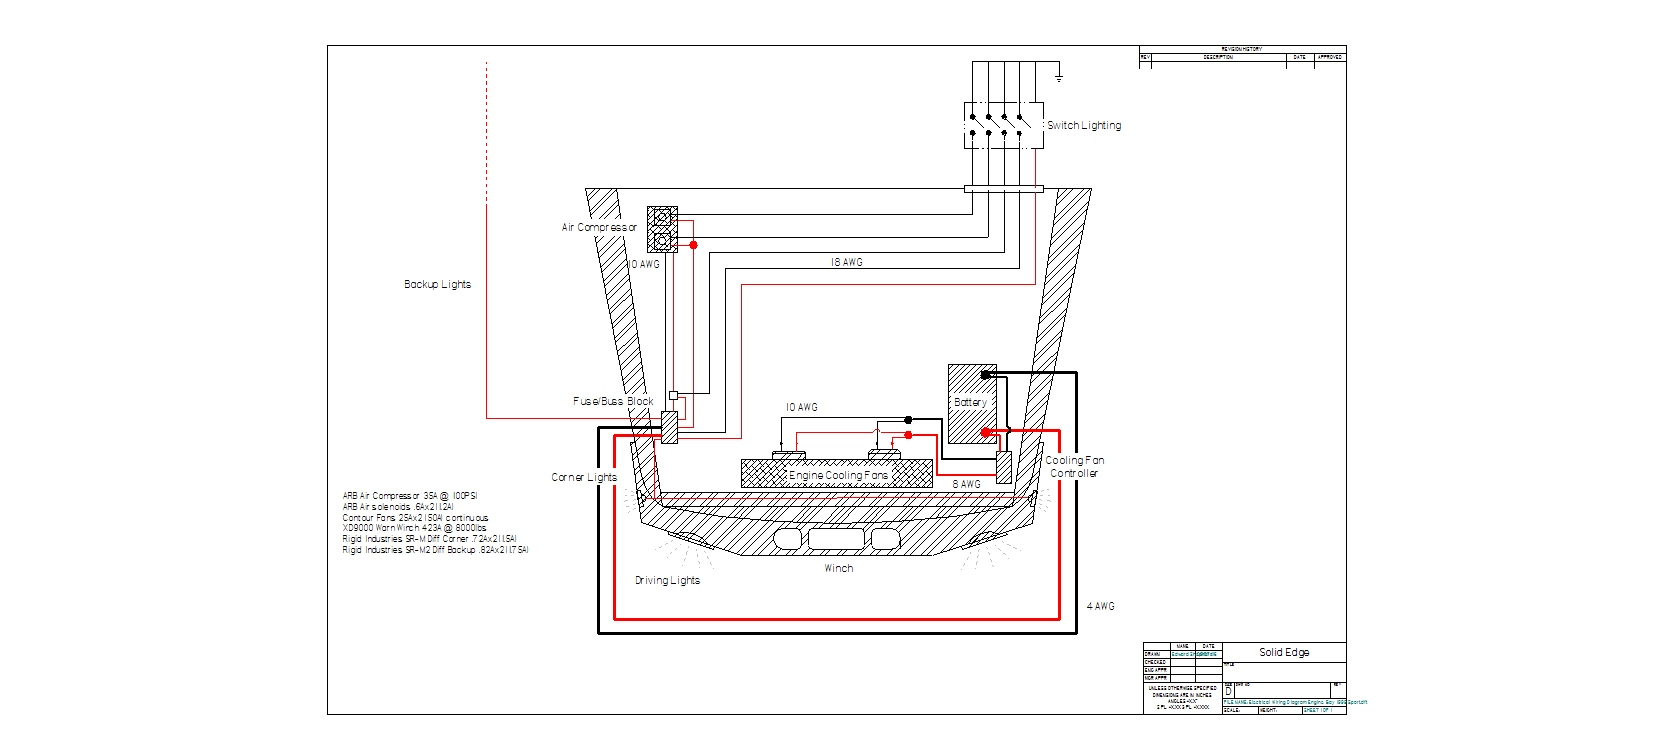 Arb Wiring Diagram Guide And Troubleshooting Of Air Locker Harness Compressor Switch 57 Chevy